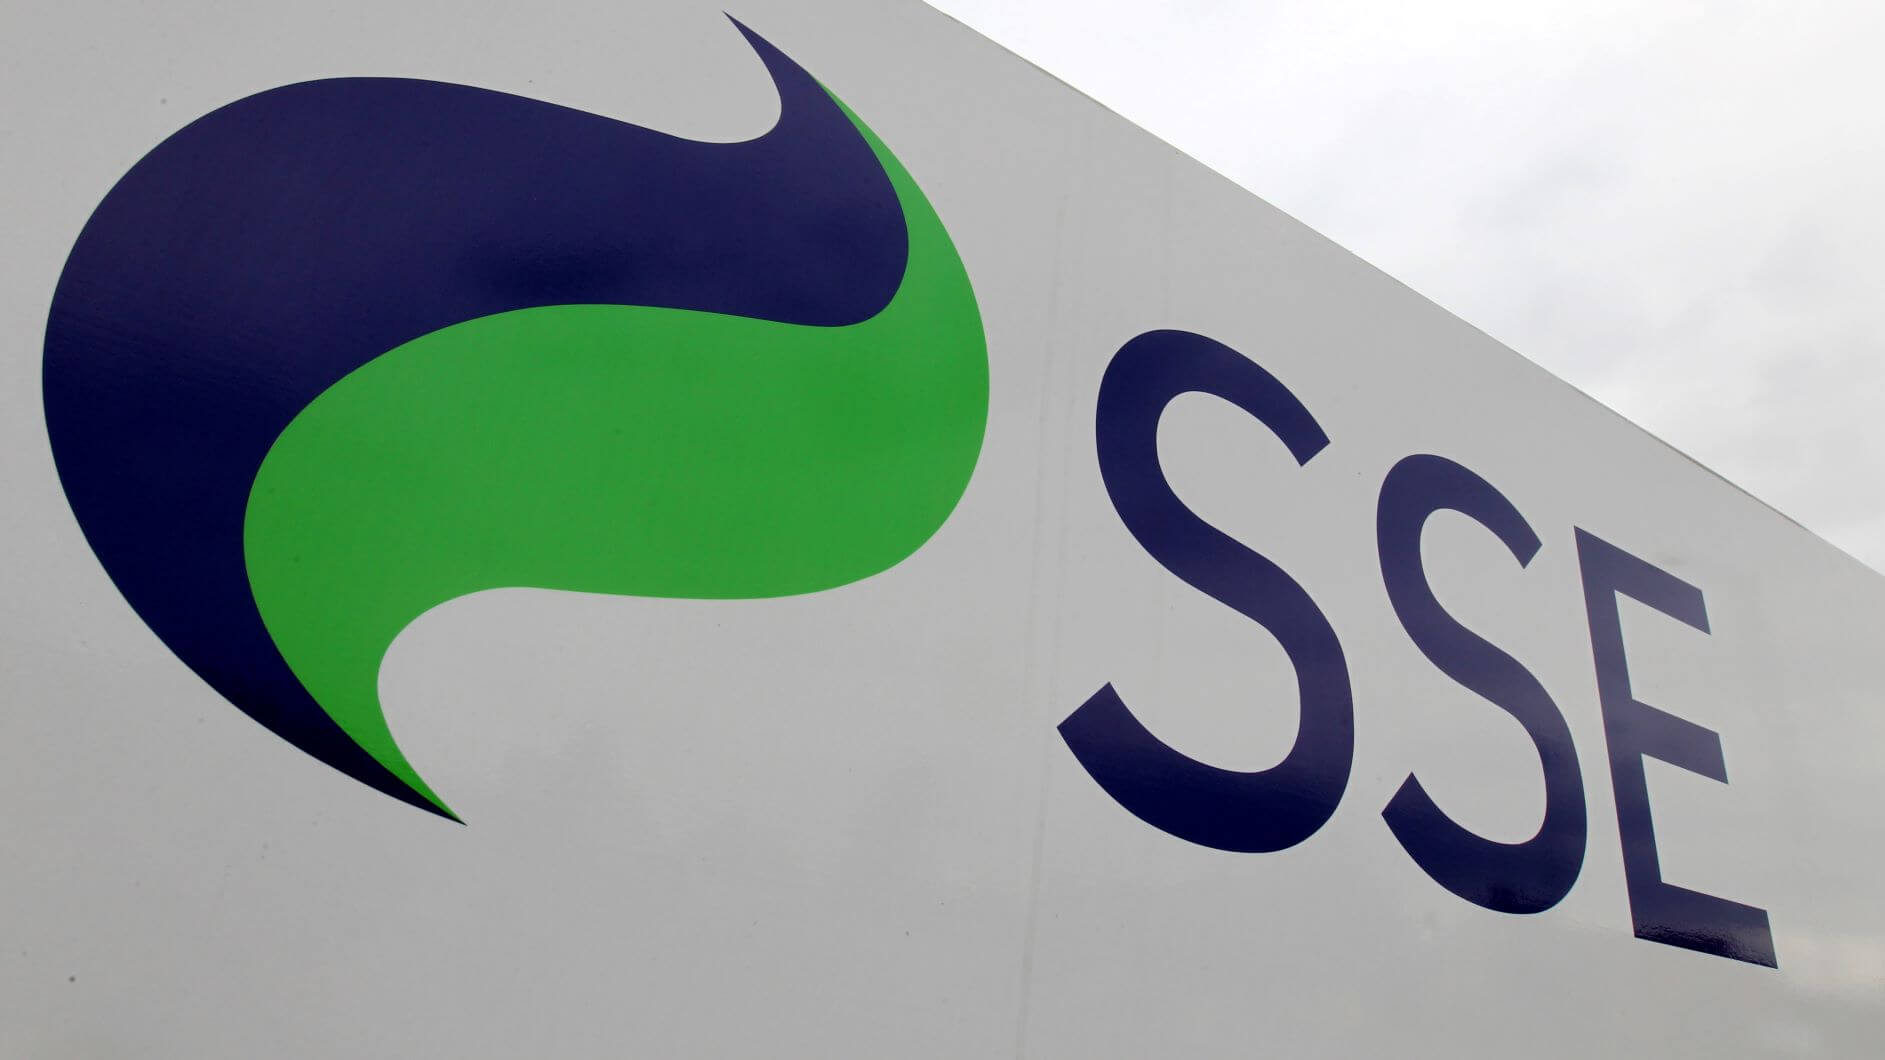 SSE Agrees £500m Deal To Sell Household Supply Arm To OVO